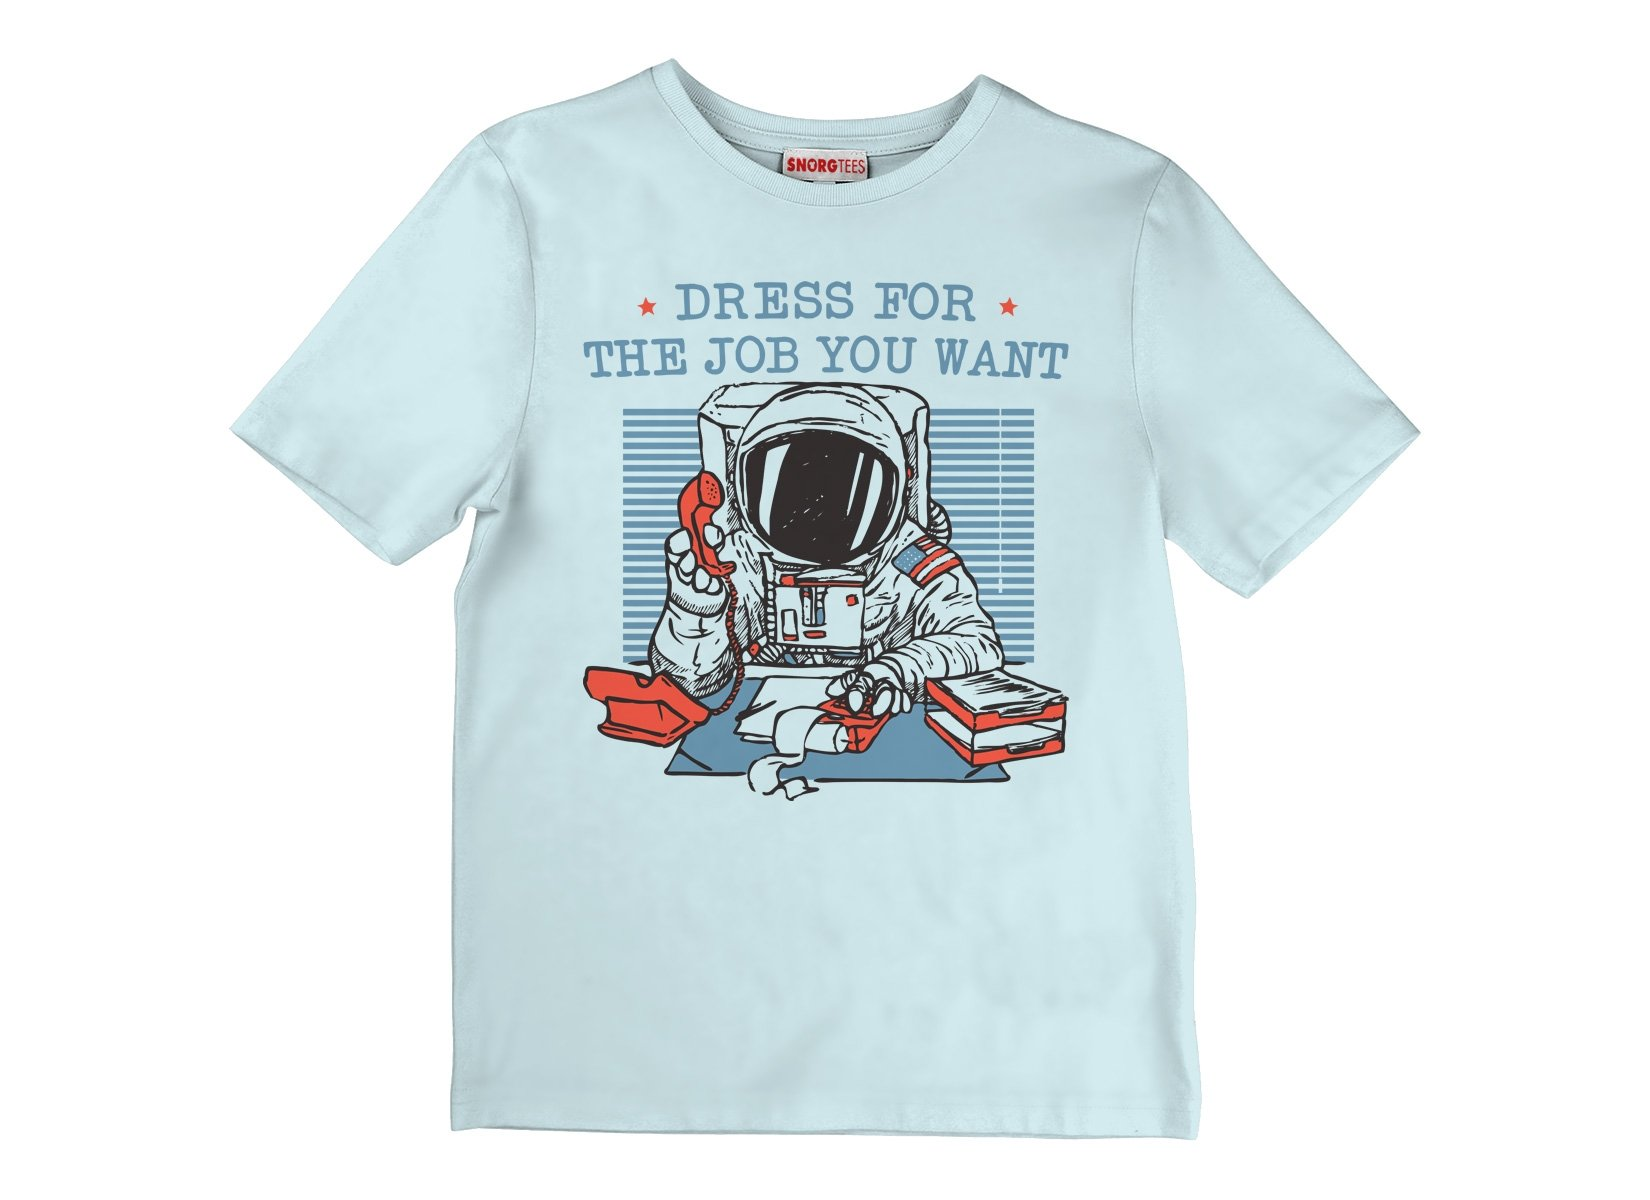 Dress For The Job You Want on Kids T-Shirt